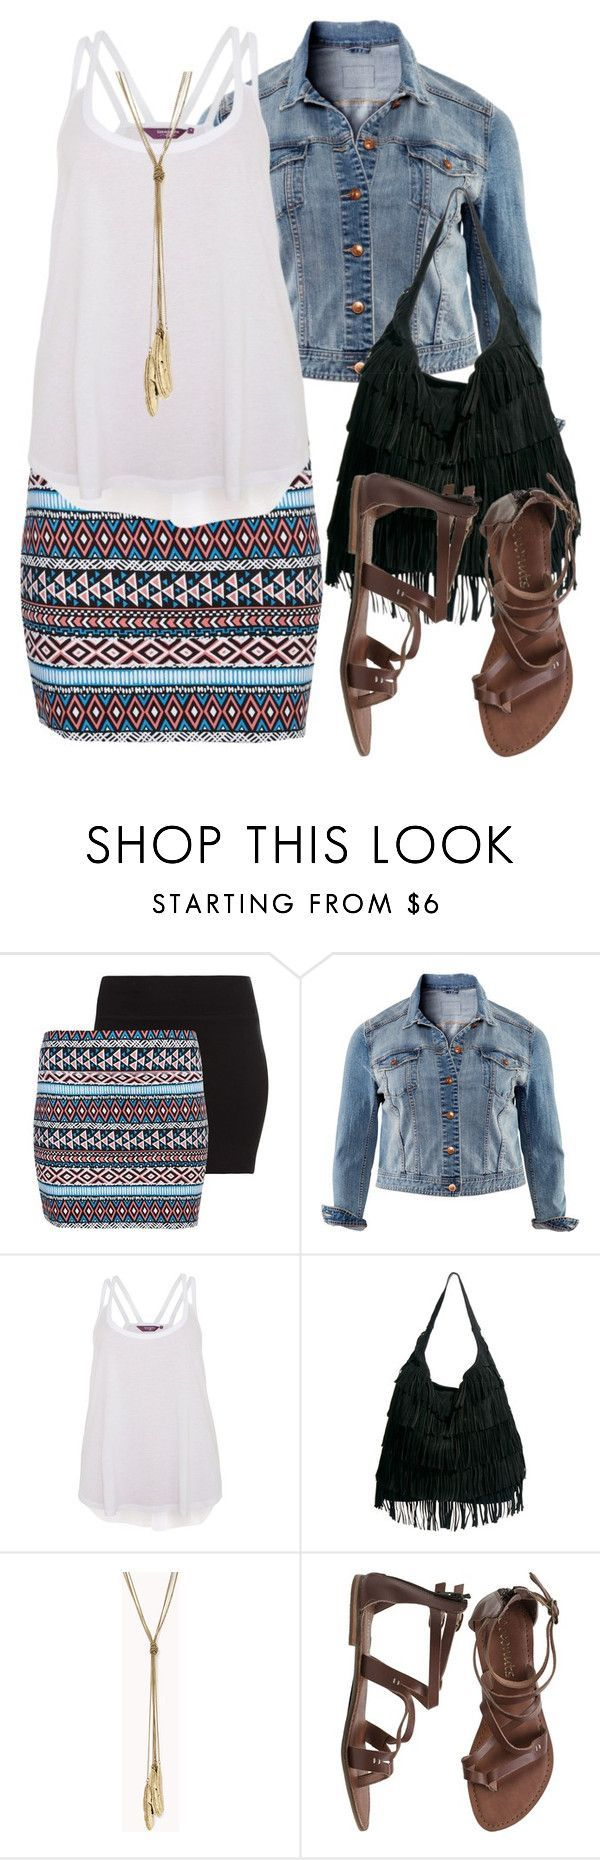 """Aztec Skirt - Plus Size"" by alexawebb ❤️ liked on Polyvore featuring H&M, ASOS, Forever 21, Summer, Aztec, plus, plussize and size"